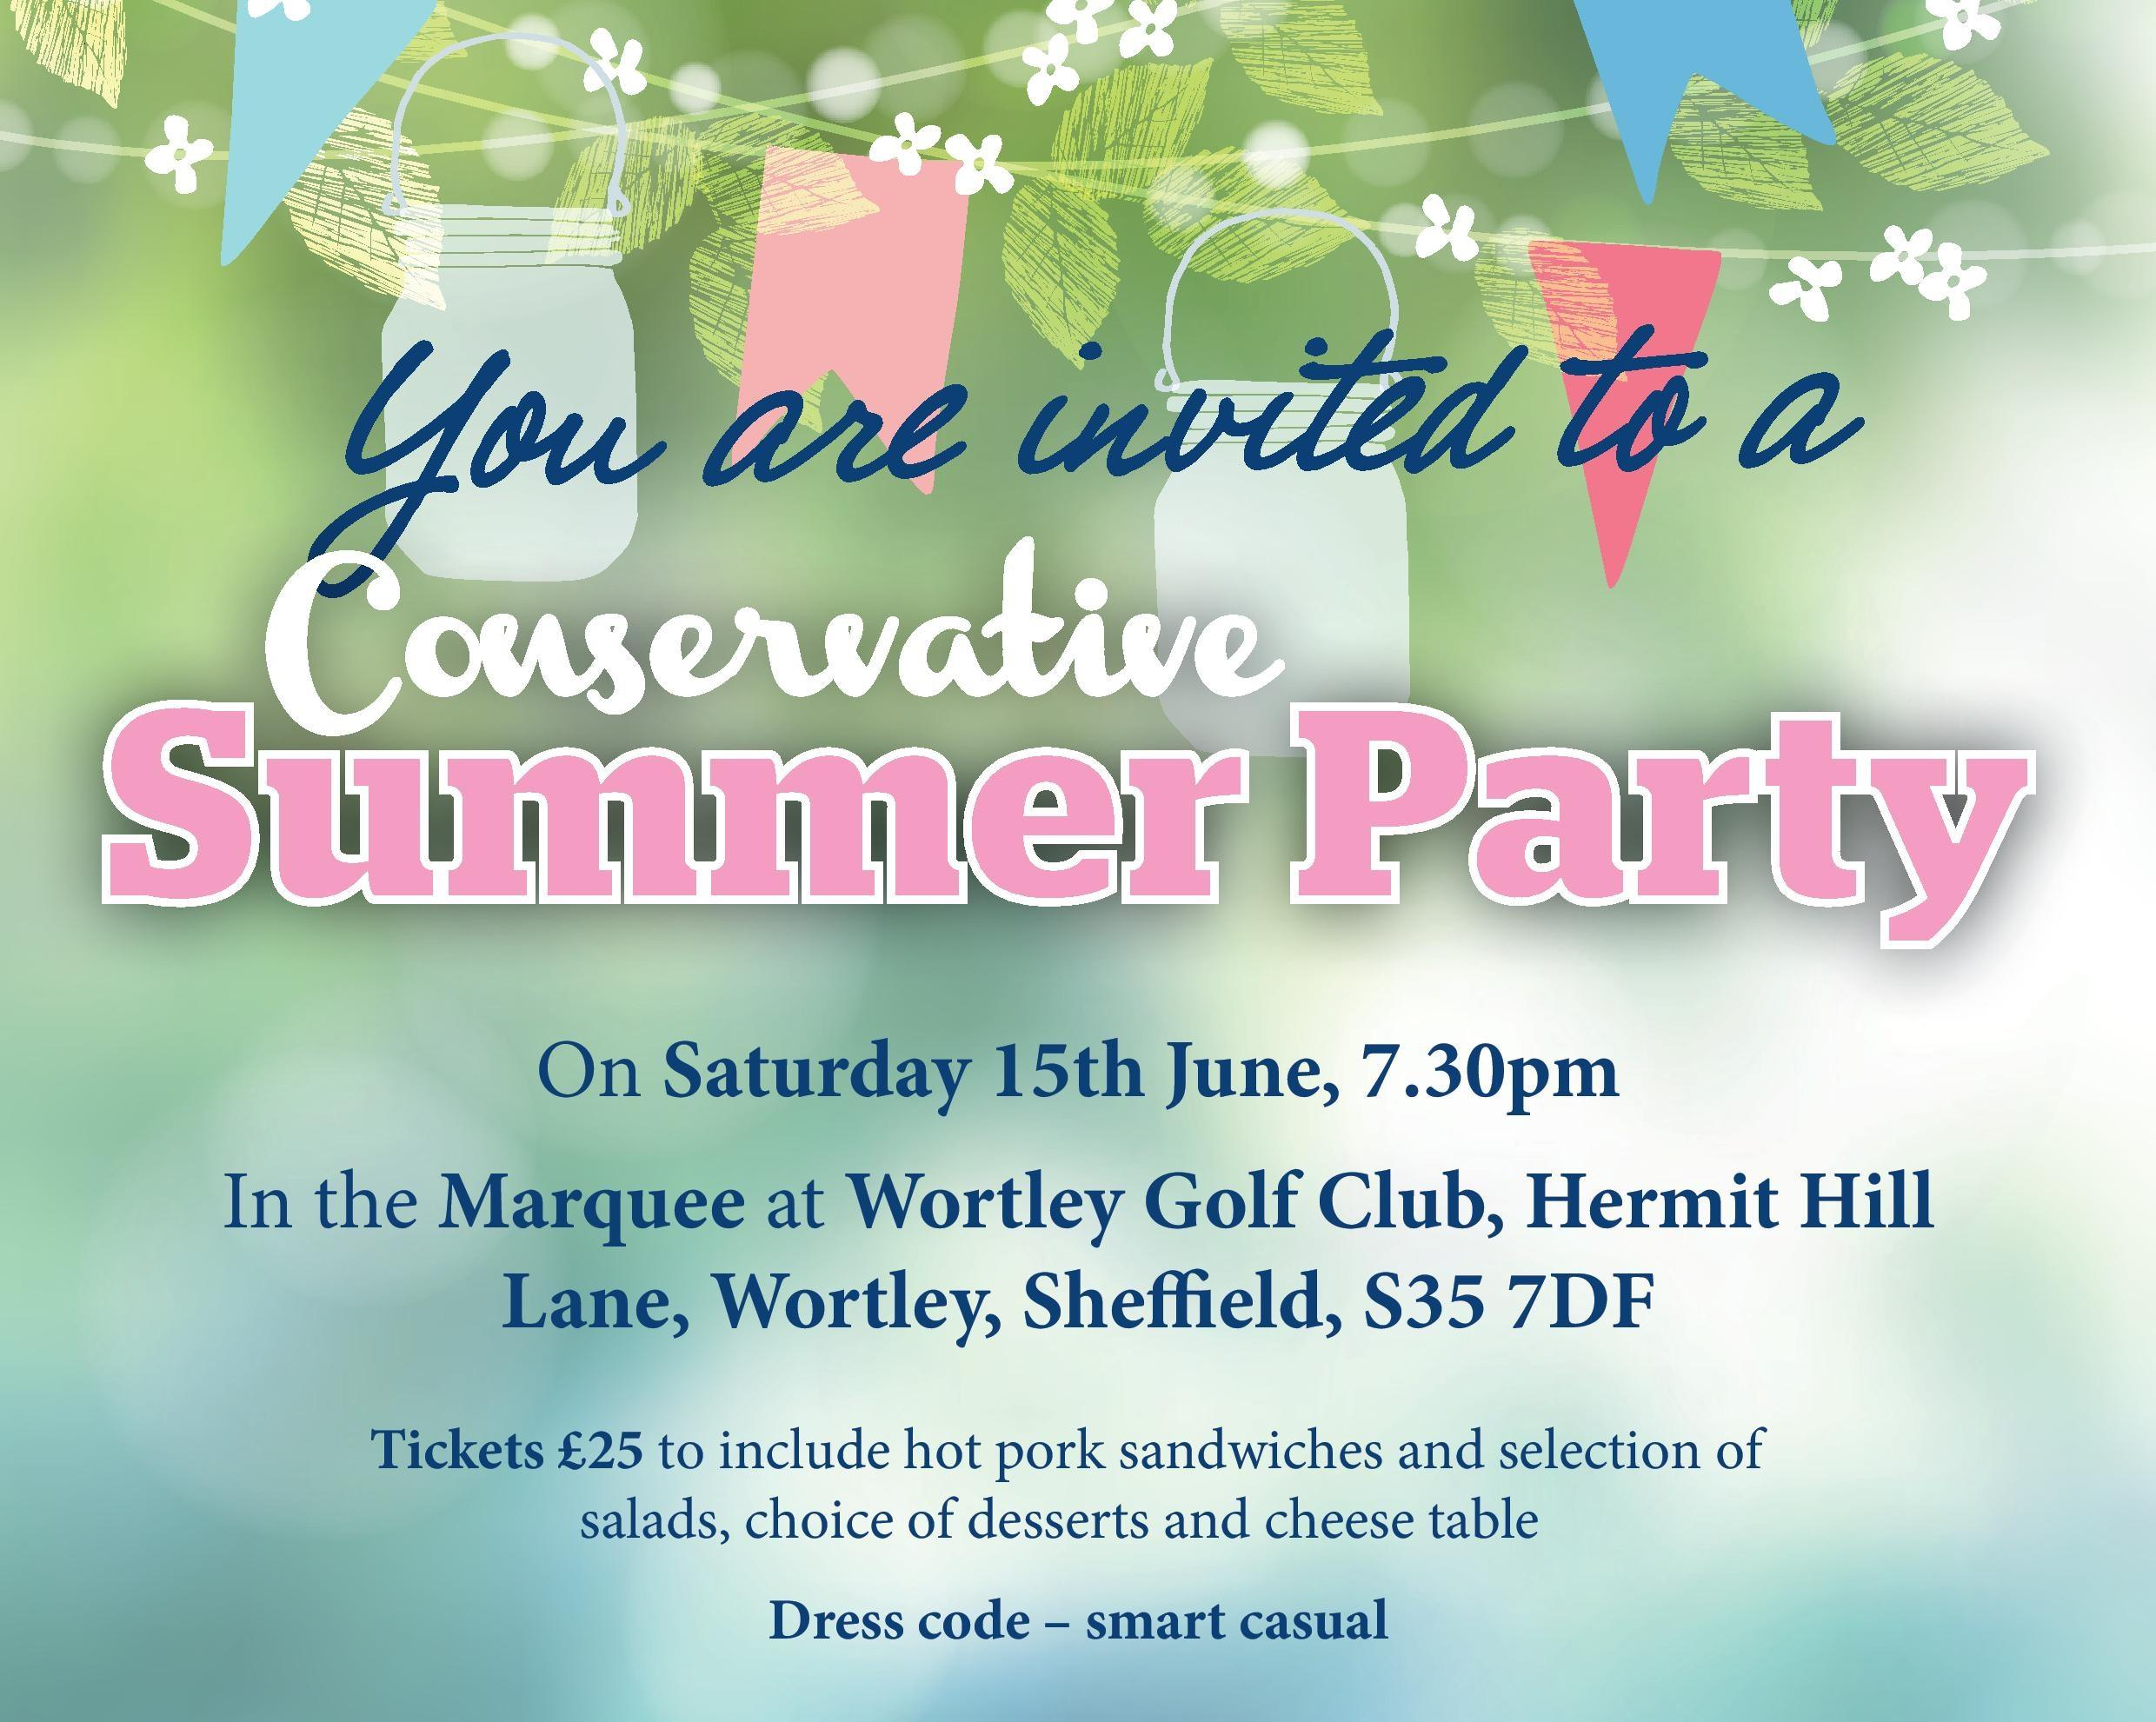 Conservative summer party on Saturday 15 June 2019